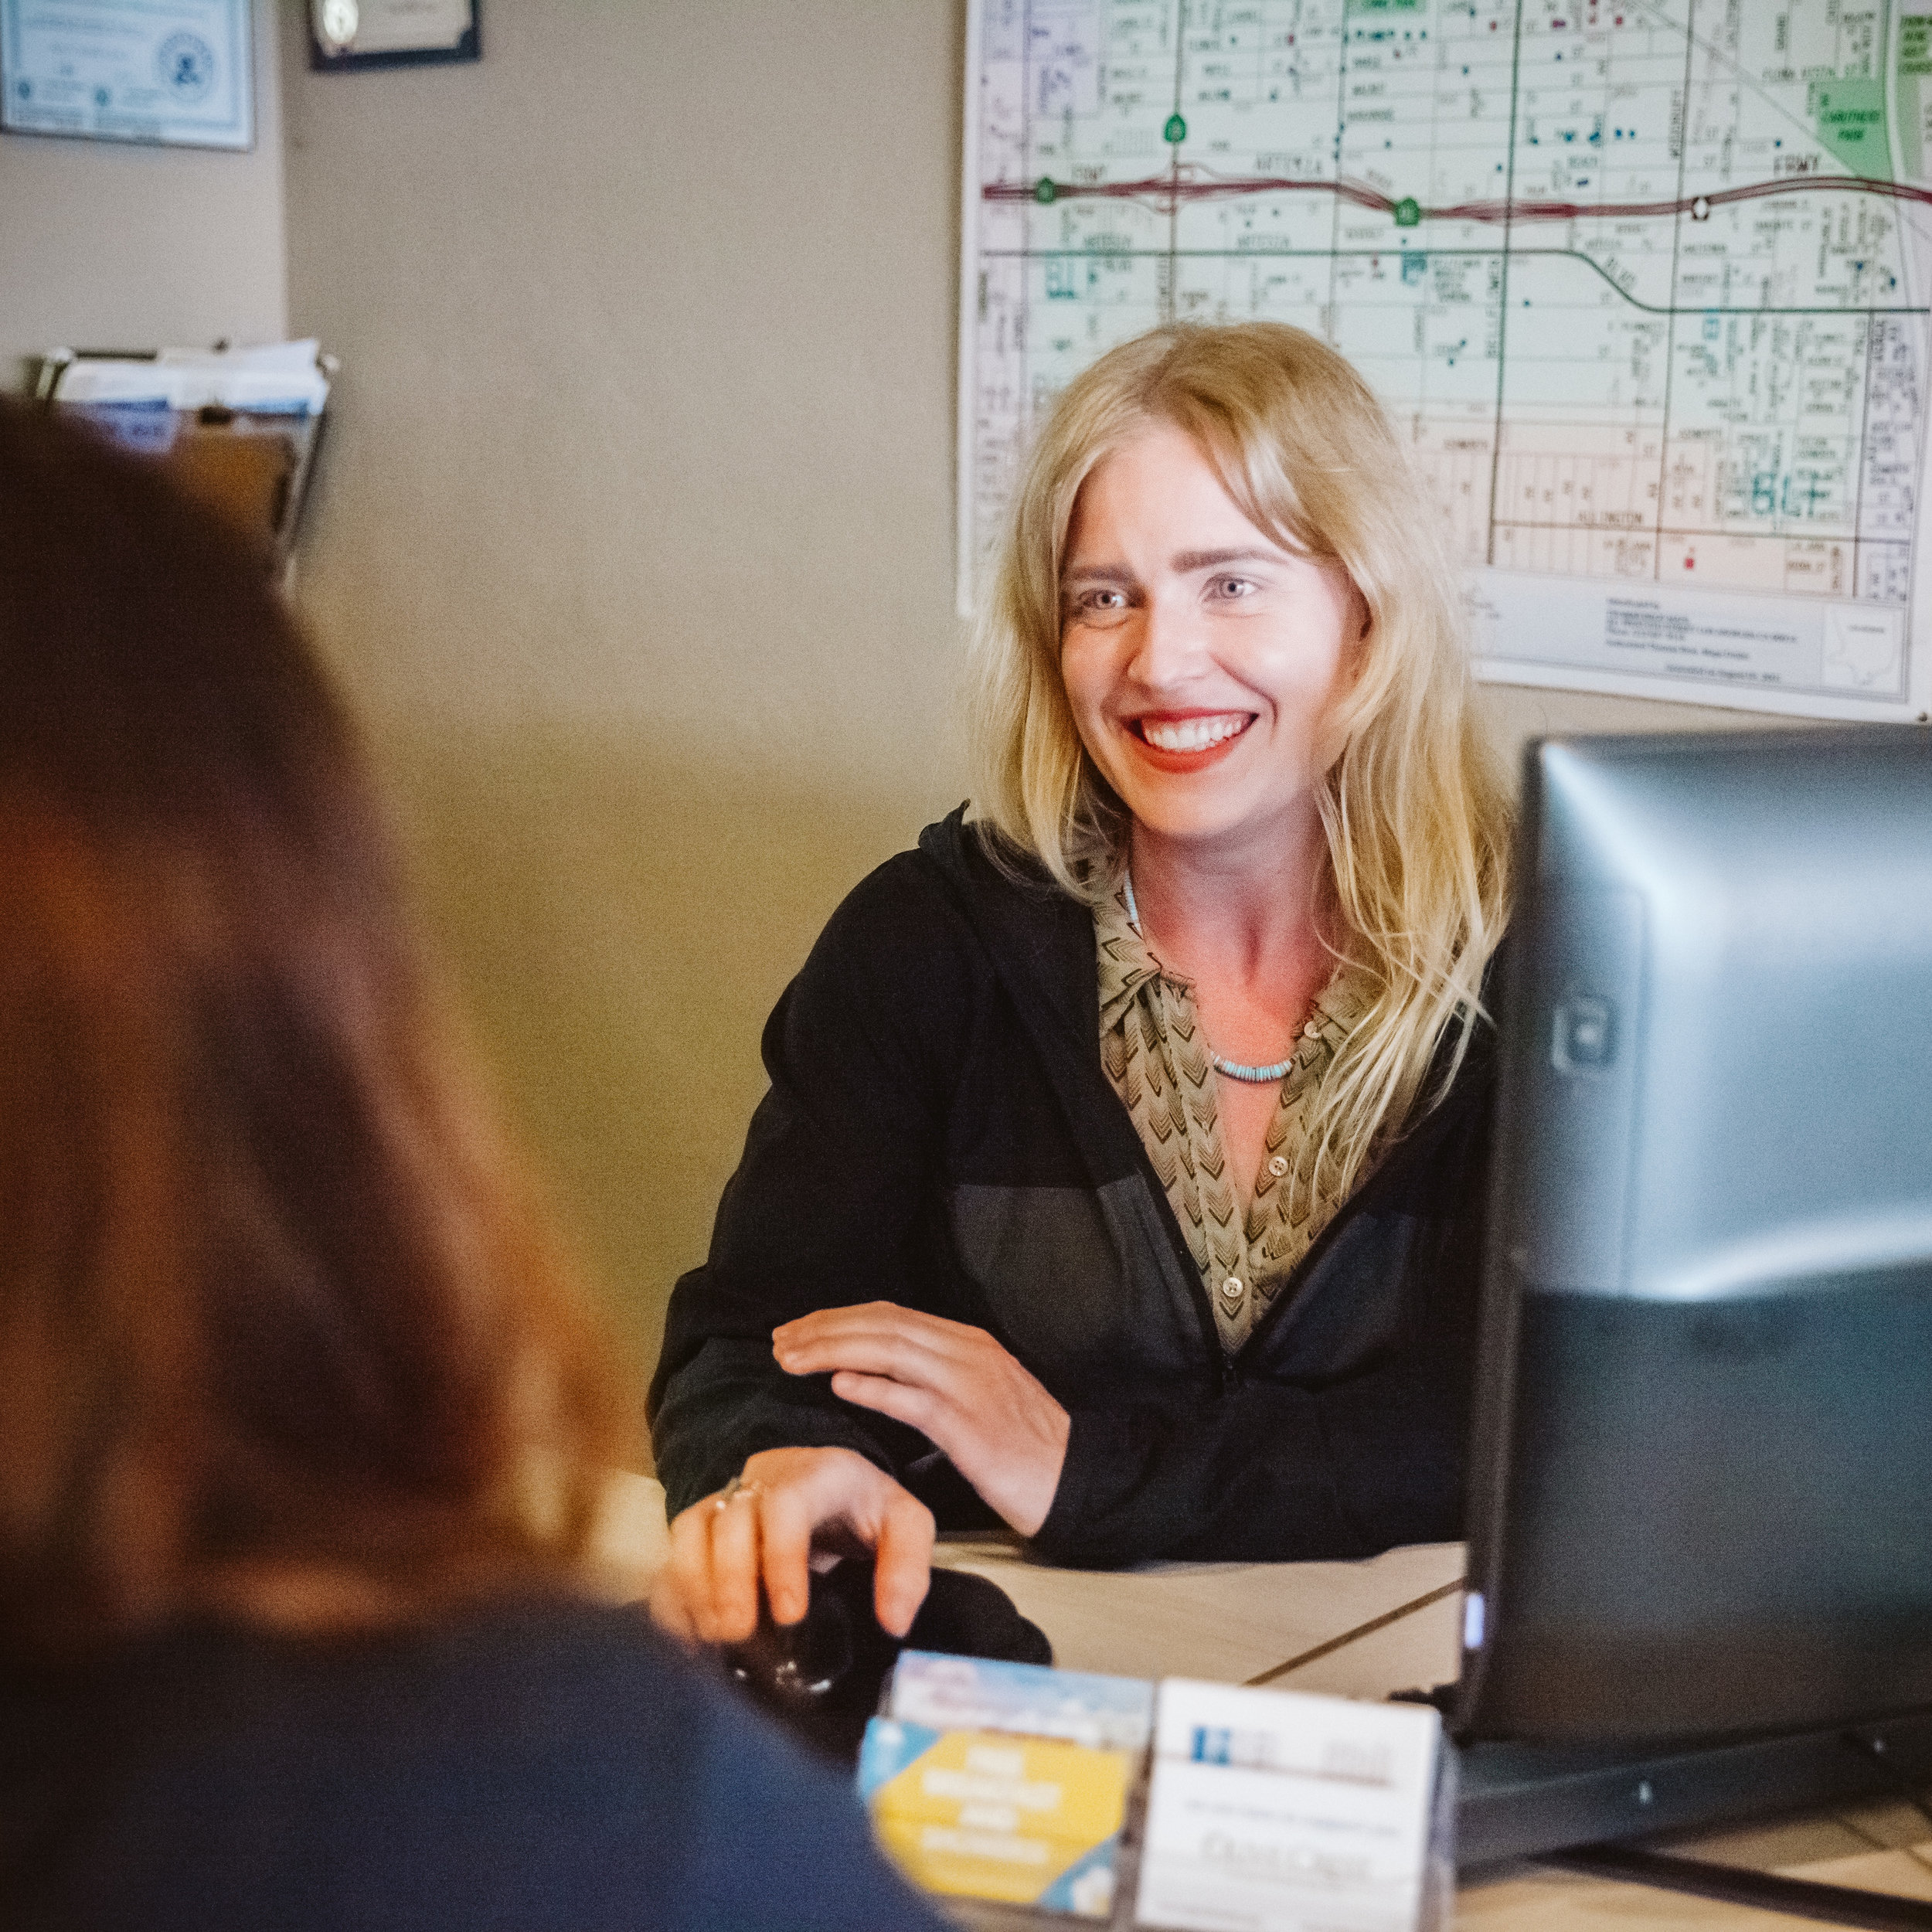 RECEPTIONIST - Are you a friendly face that loves interacting with our neighbors? Then we would love to have you help at our front desk!